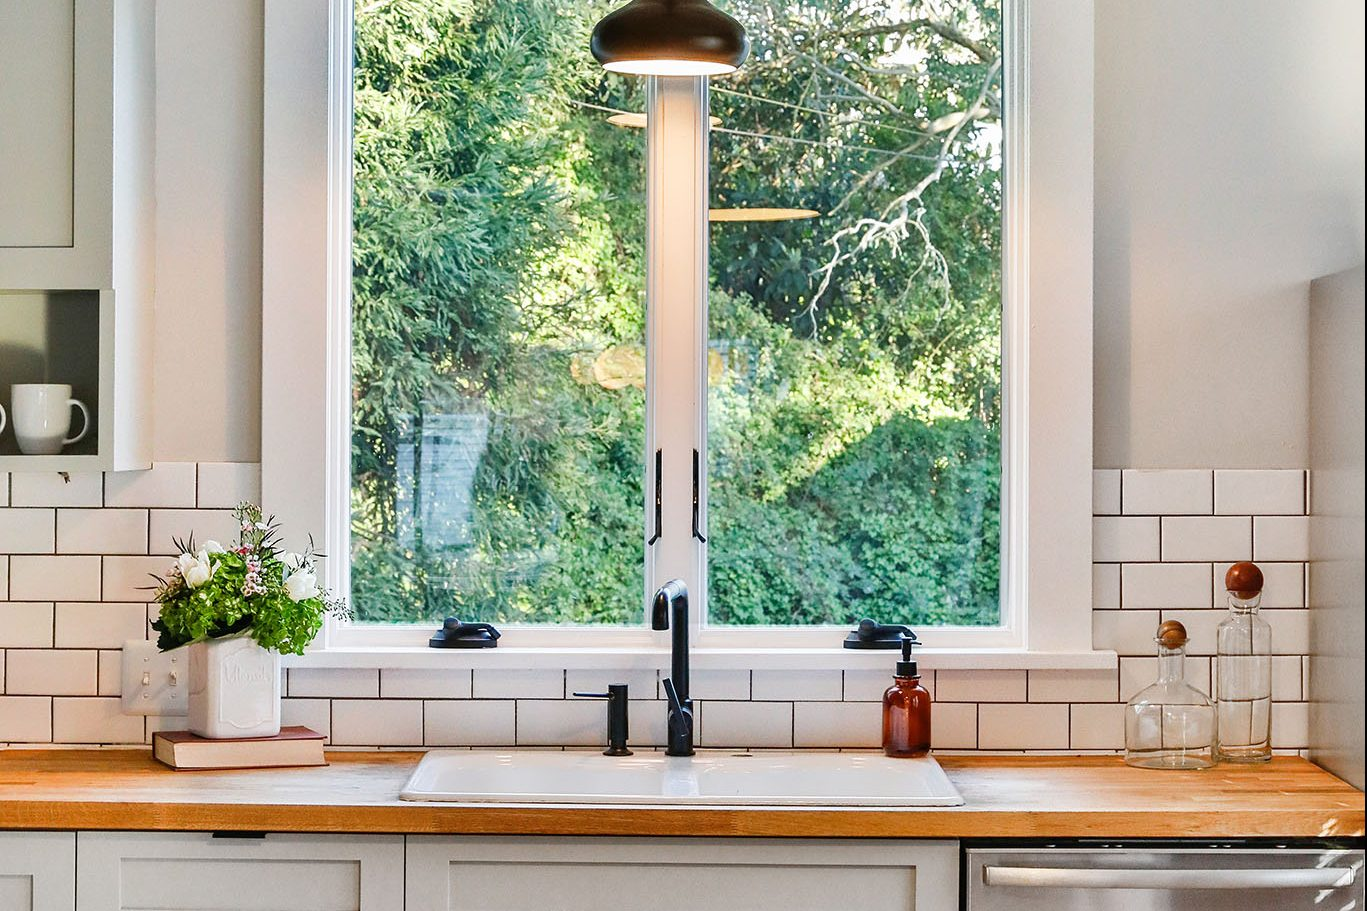 SF Home - kitchen sink with window and subway tile